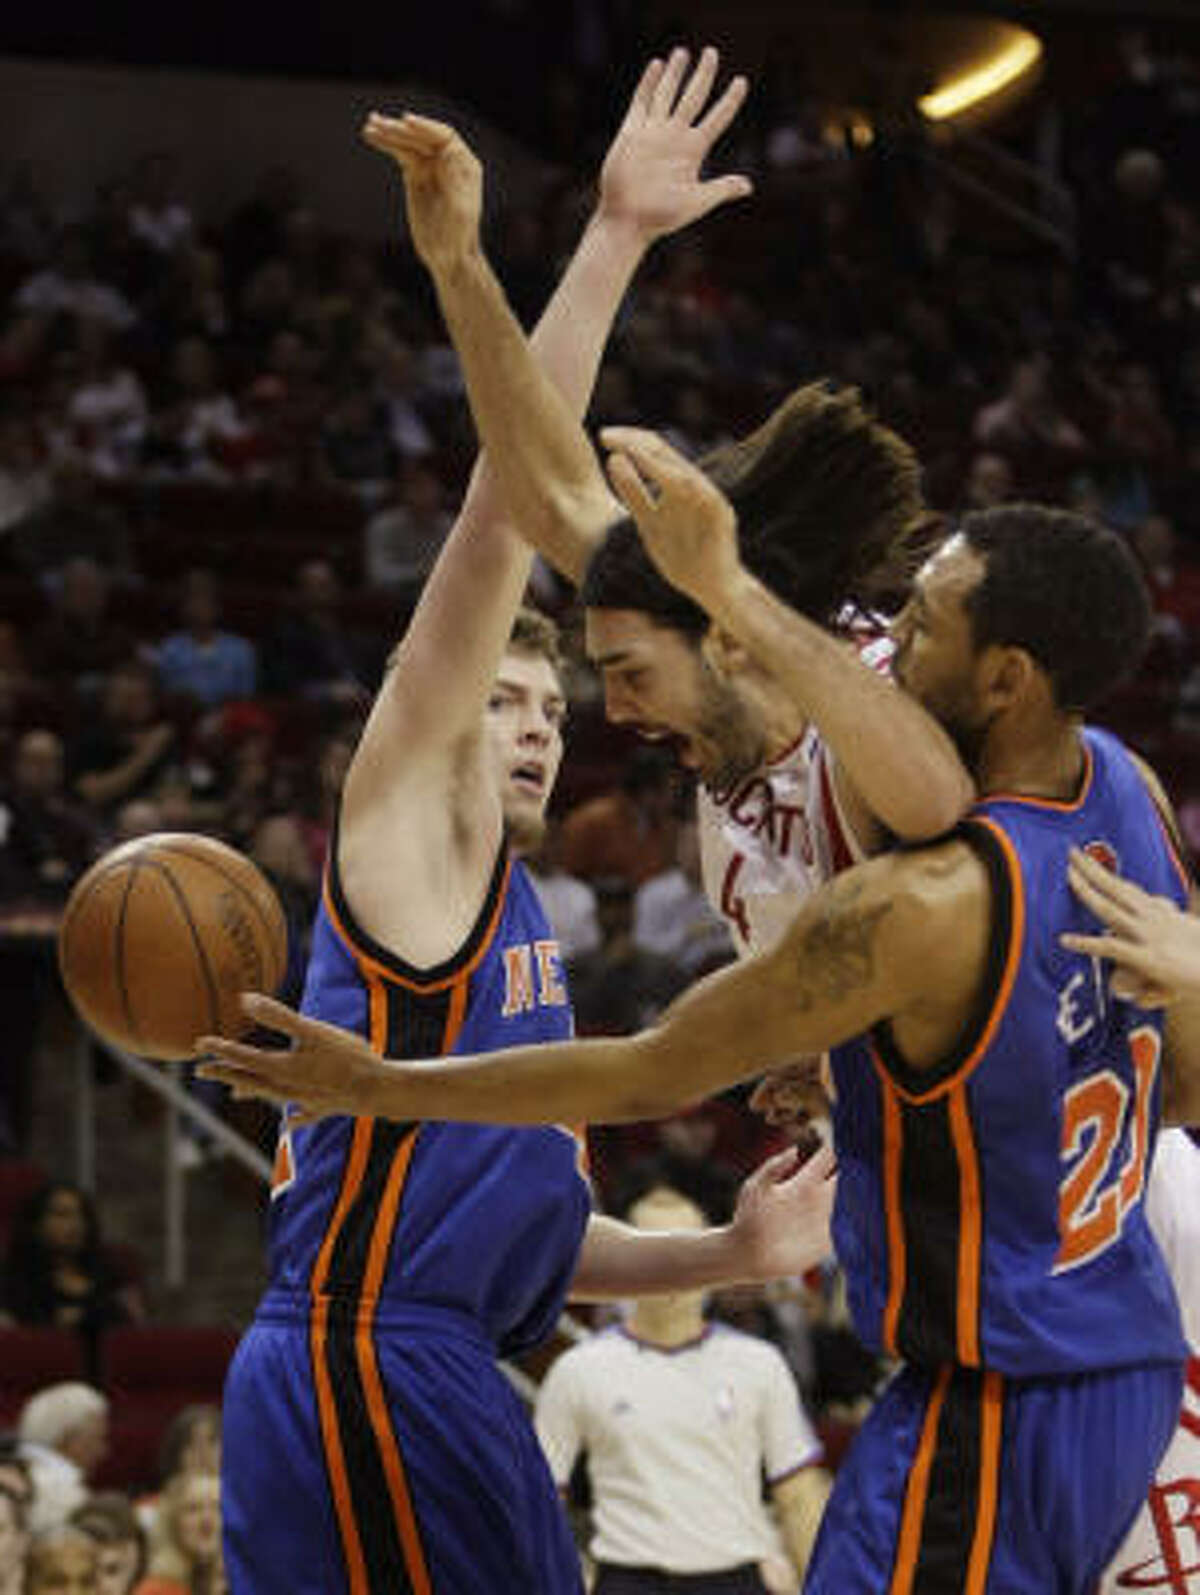 Luis Scola, center, battles two Knicks defenders, David Lee, left, and Jared Jeffries, for a rebound off his own miss in the first half.